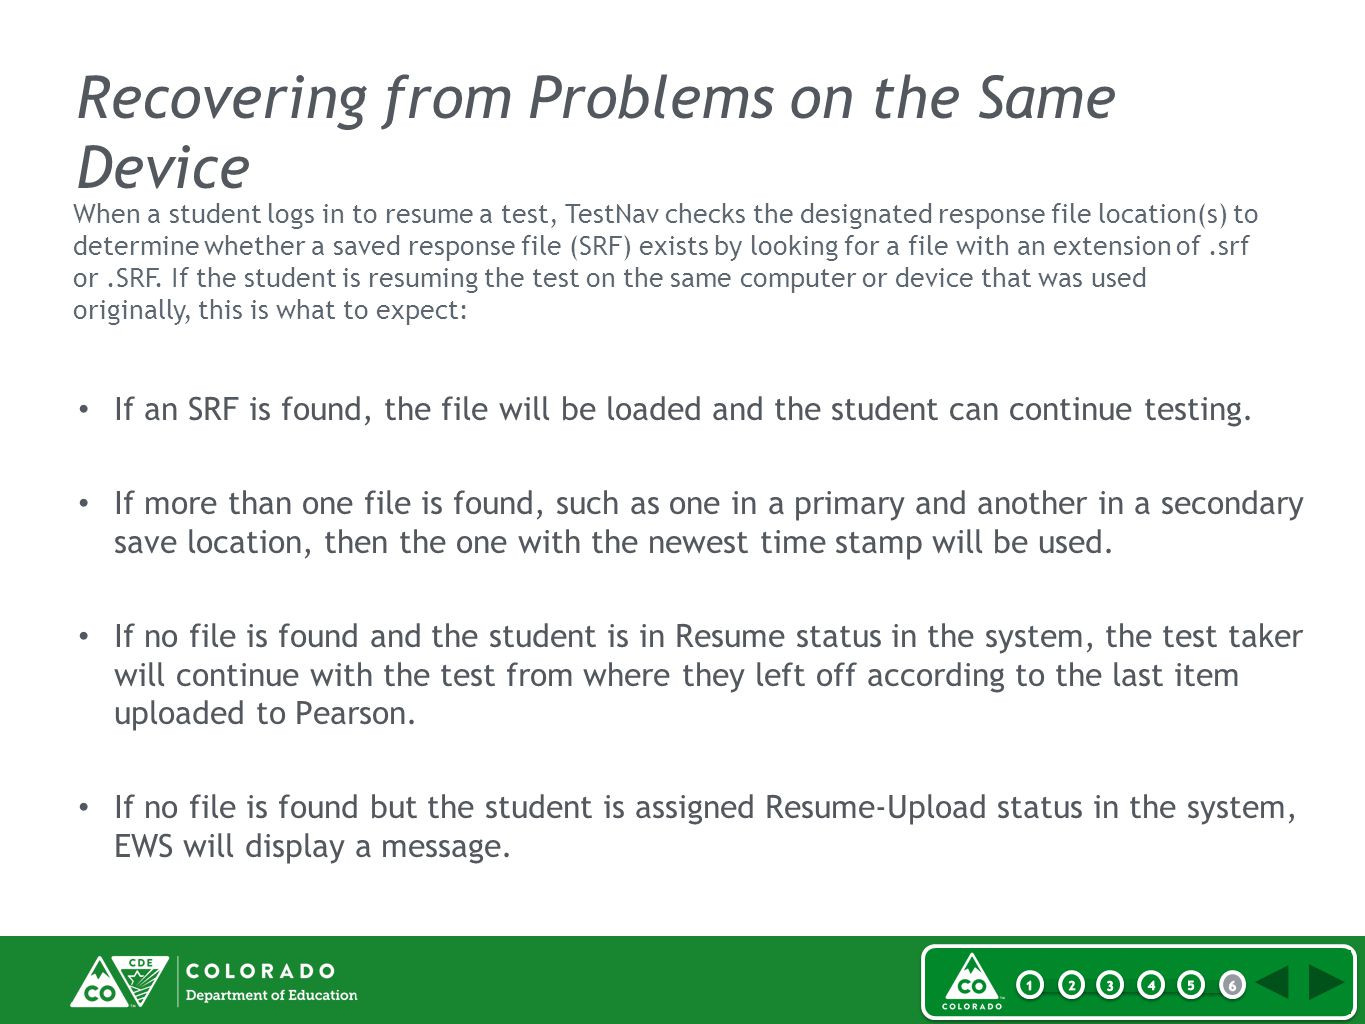 Recovering from Problems on the Same Device If an SRF is found, the file will be loaded and the student can continue testing.